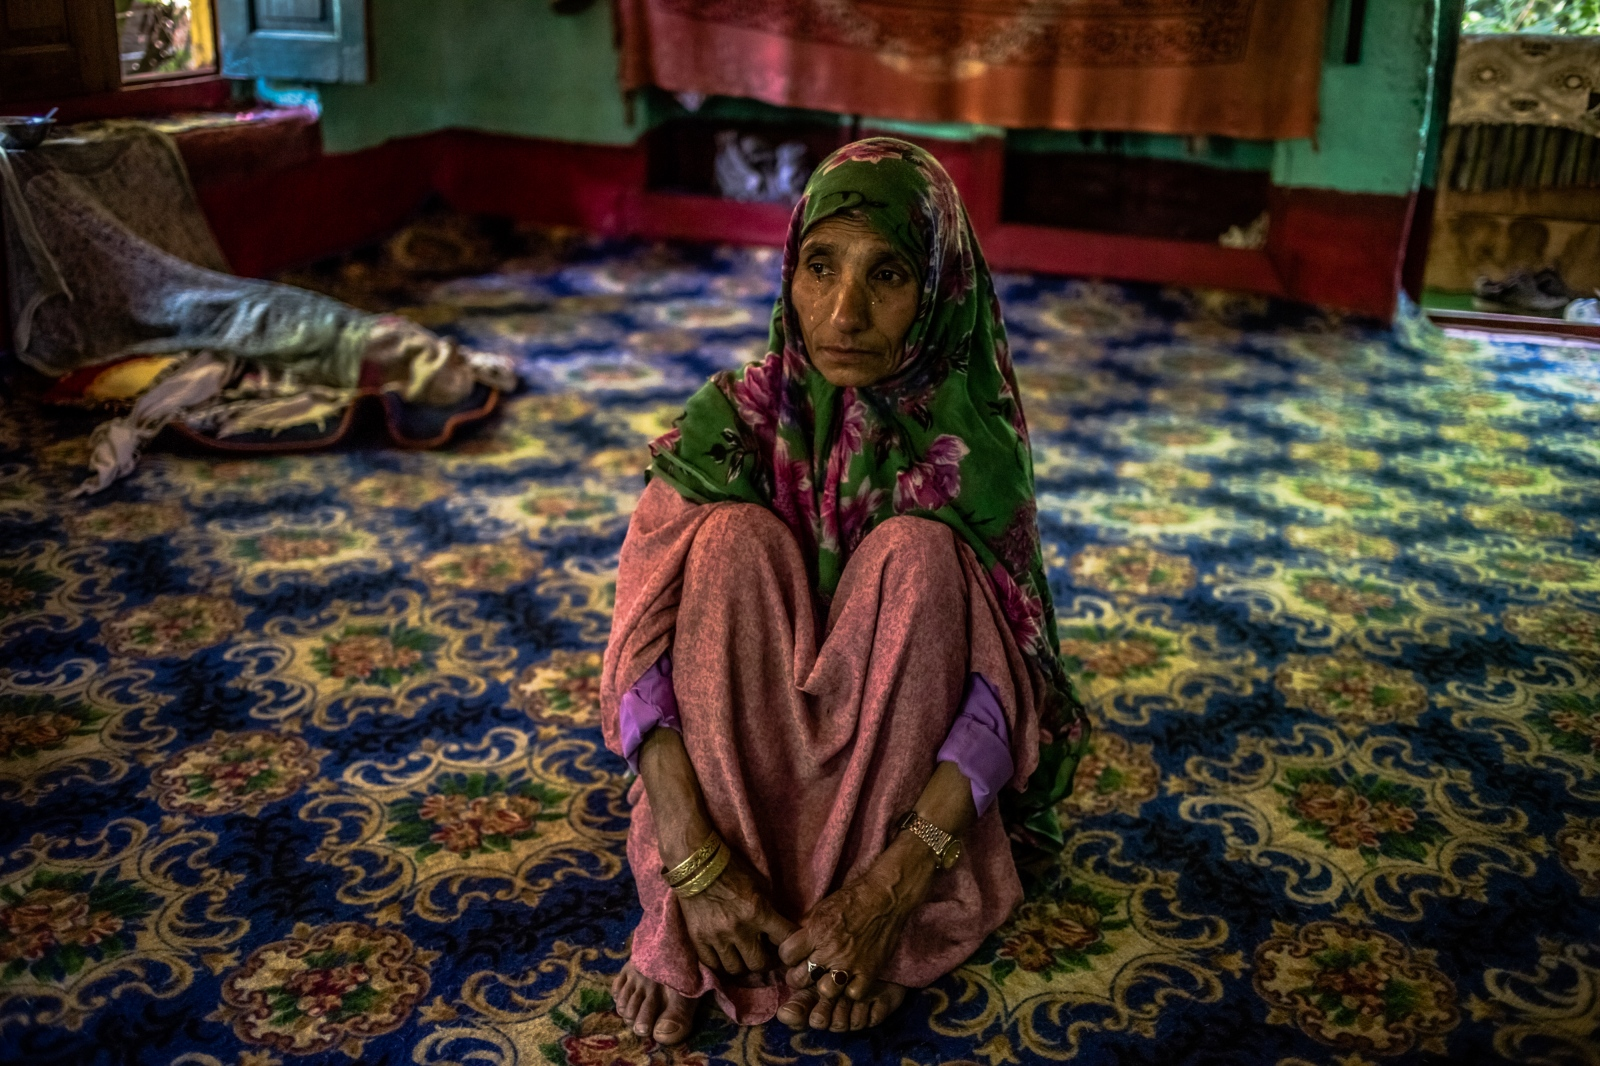 Kashmiri mother Rahma Begum, who is unsure of her age, recounts the disappearance of her son Mir Ali, who went missing in 2003, one year after he married, at her home in Wantwoora Mohalla in Kandi in north Kashmir's Kupwara district on June 29, 2016. For three years after he went missing, Rahma searched for her son, leaving home daily to visit surrounding villages and consult with 'pirs', or faith healers in the district of Sopore and Srinagar who told her they could 'contact' her son. Villagers told her the search was in vain. 'They told me I had gone mad, that I was mad', she says. She finally stopped looking for Ali after seeing her son in a dream.